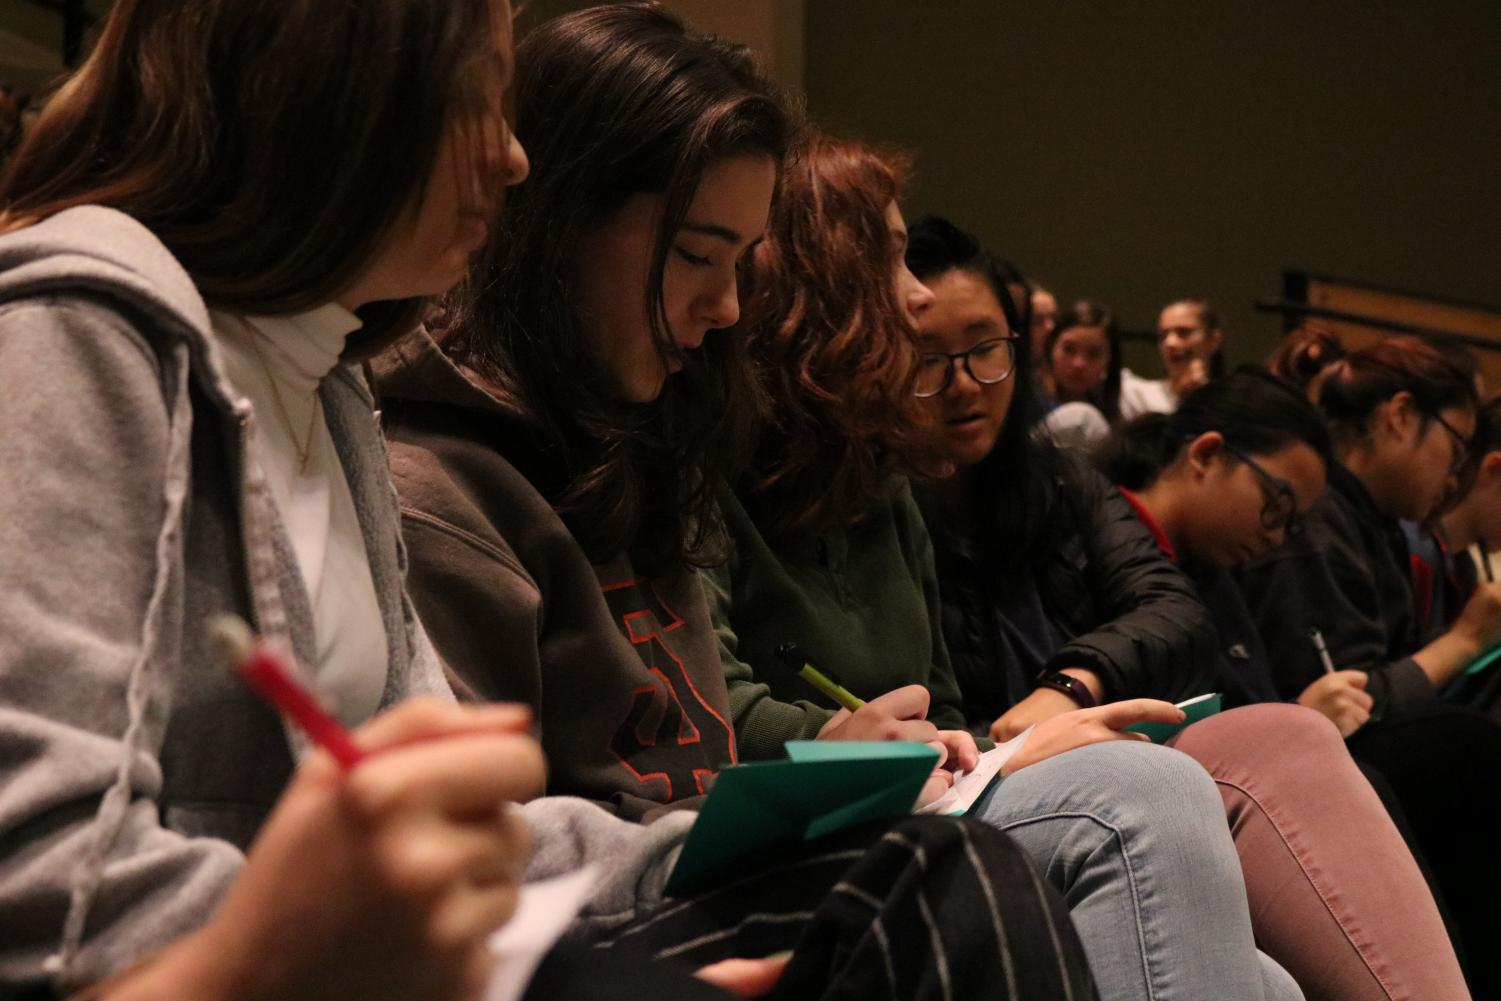 Seniors write notes of encouragement to a friend in need during a BC2M assembly. The club had students either keep the notes or give them to the friend.